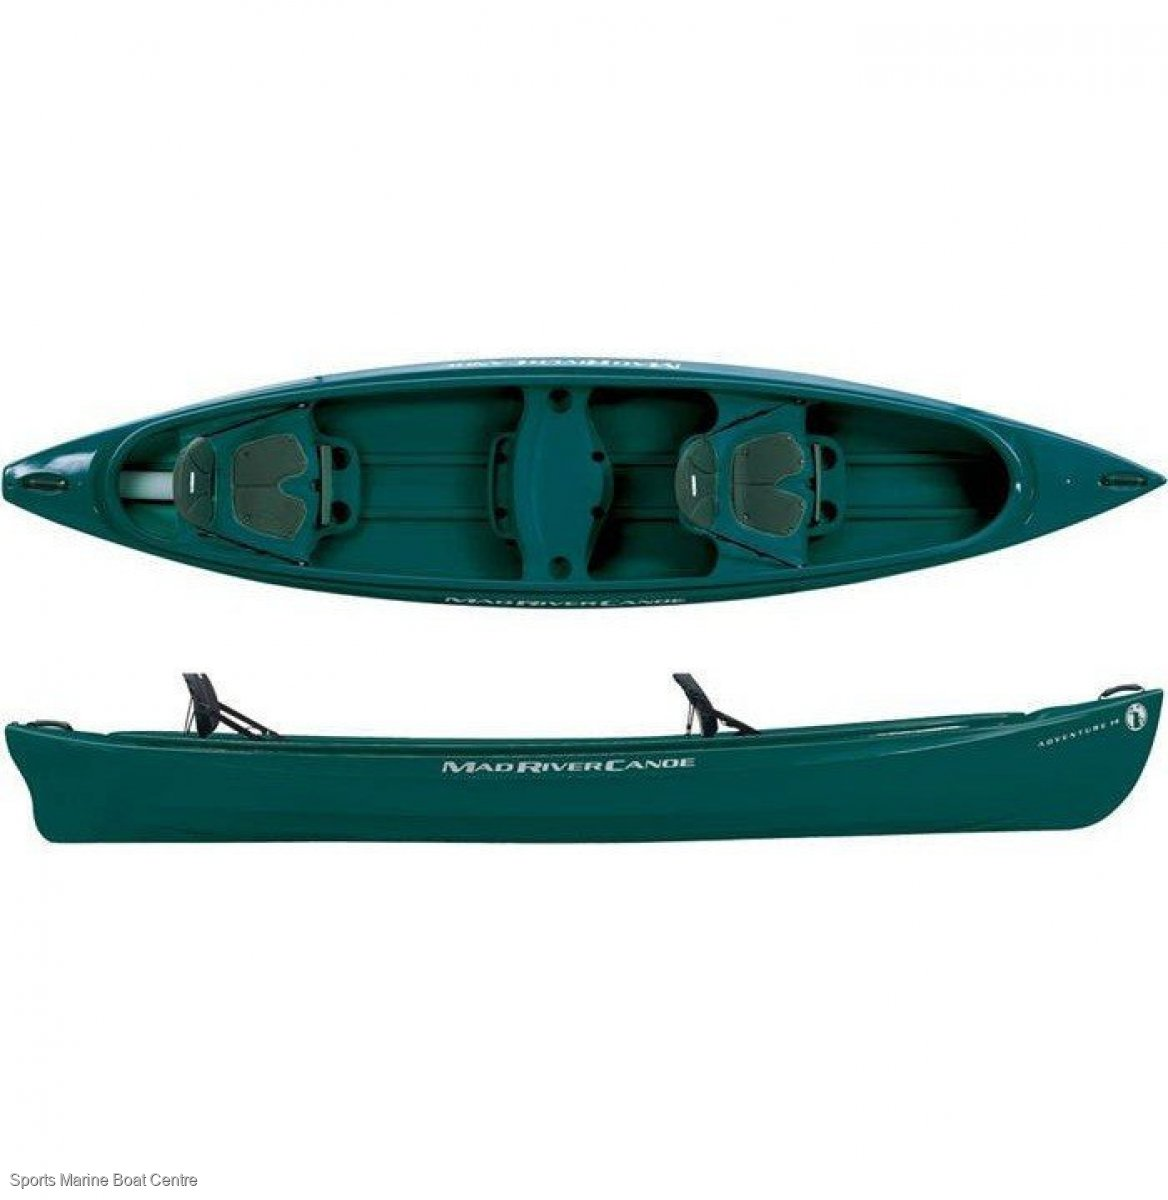 Mad River Adventure 14 Canoe 3 seater - green only